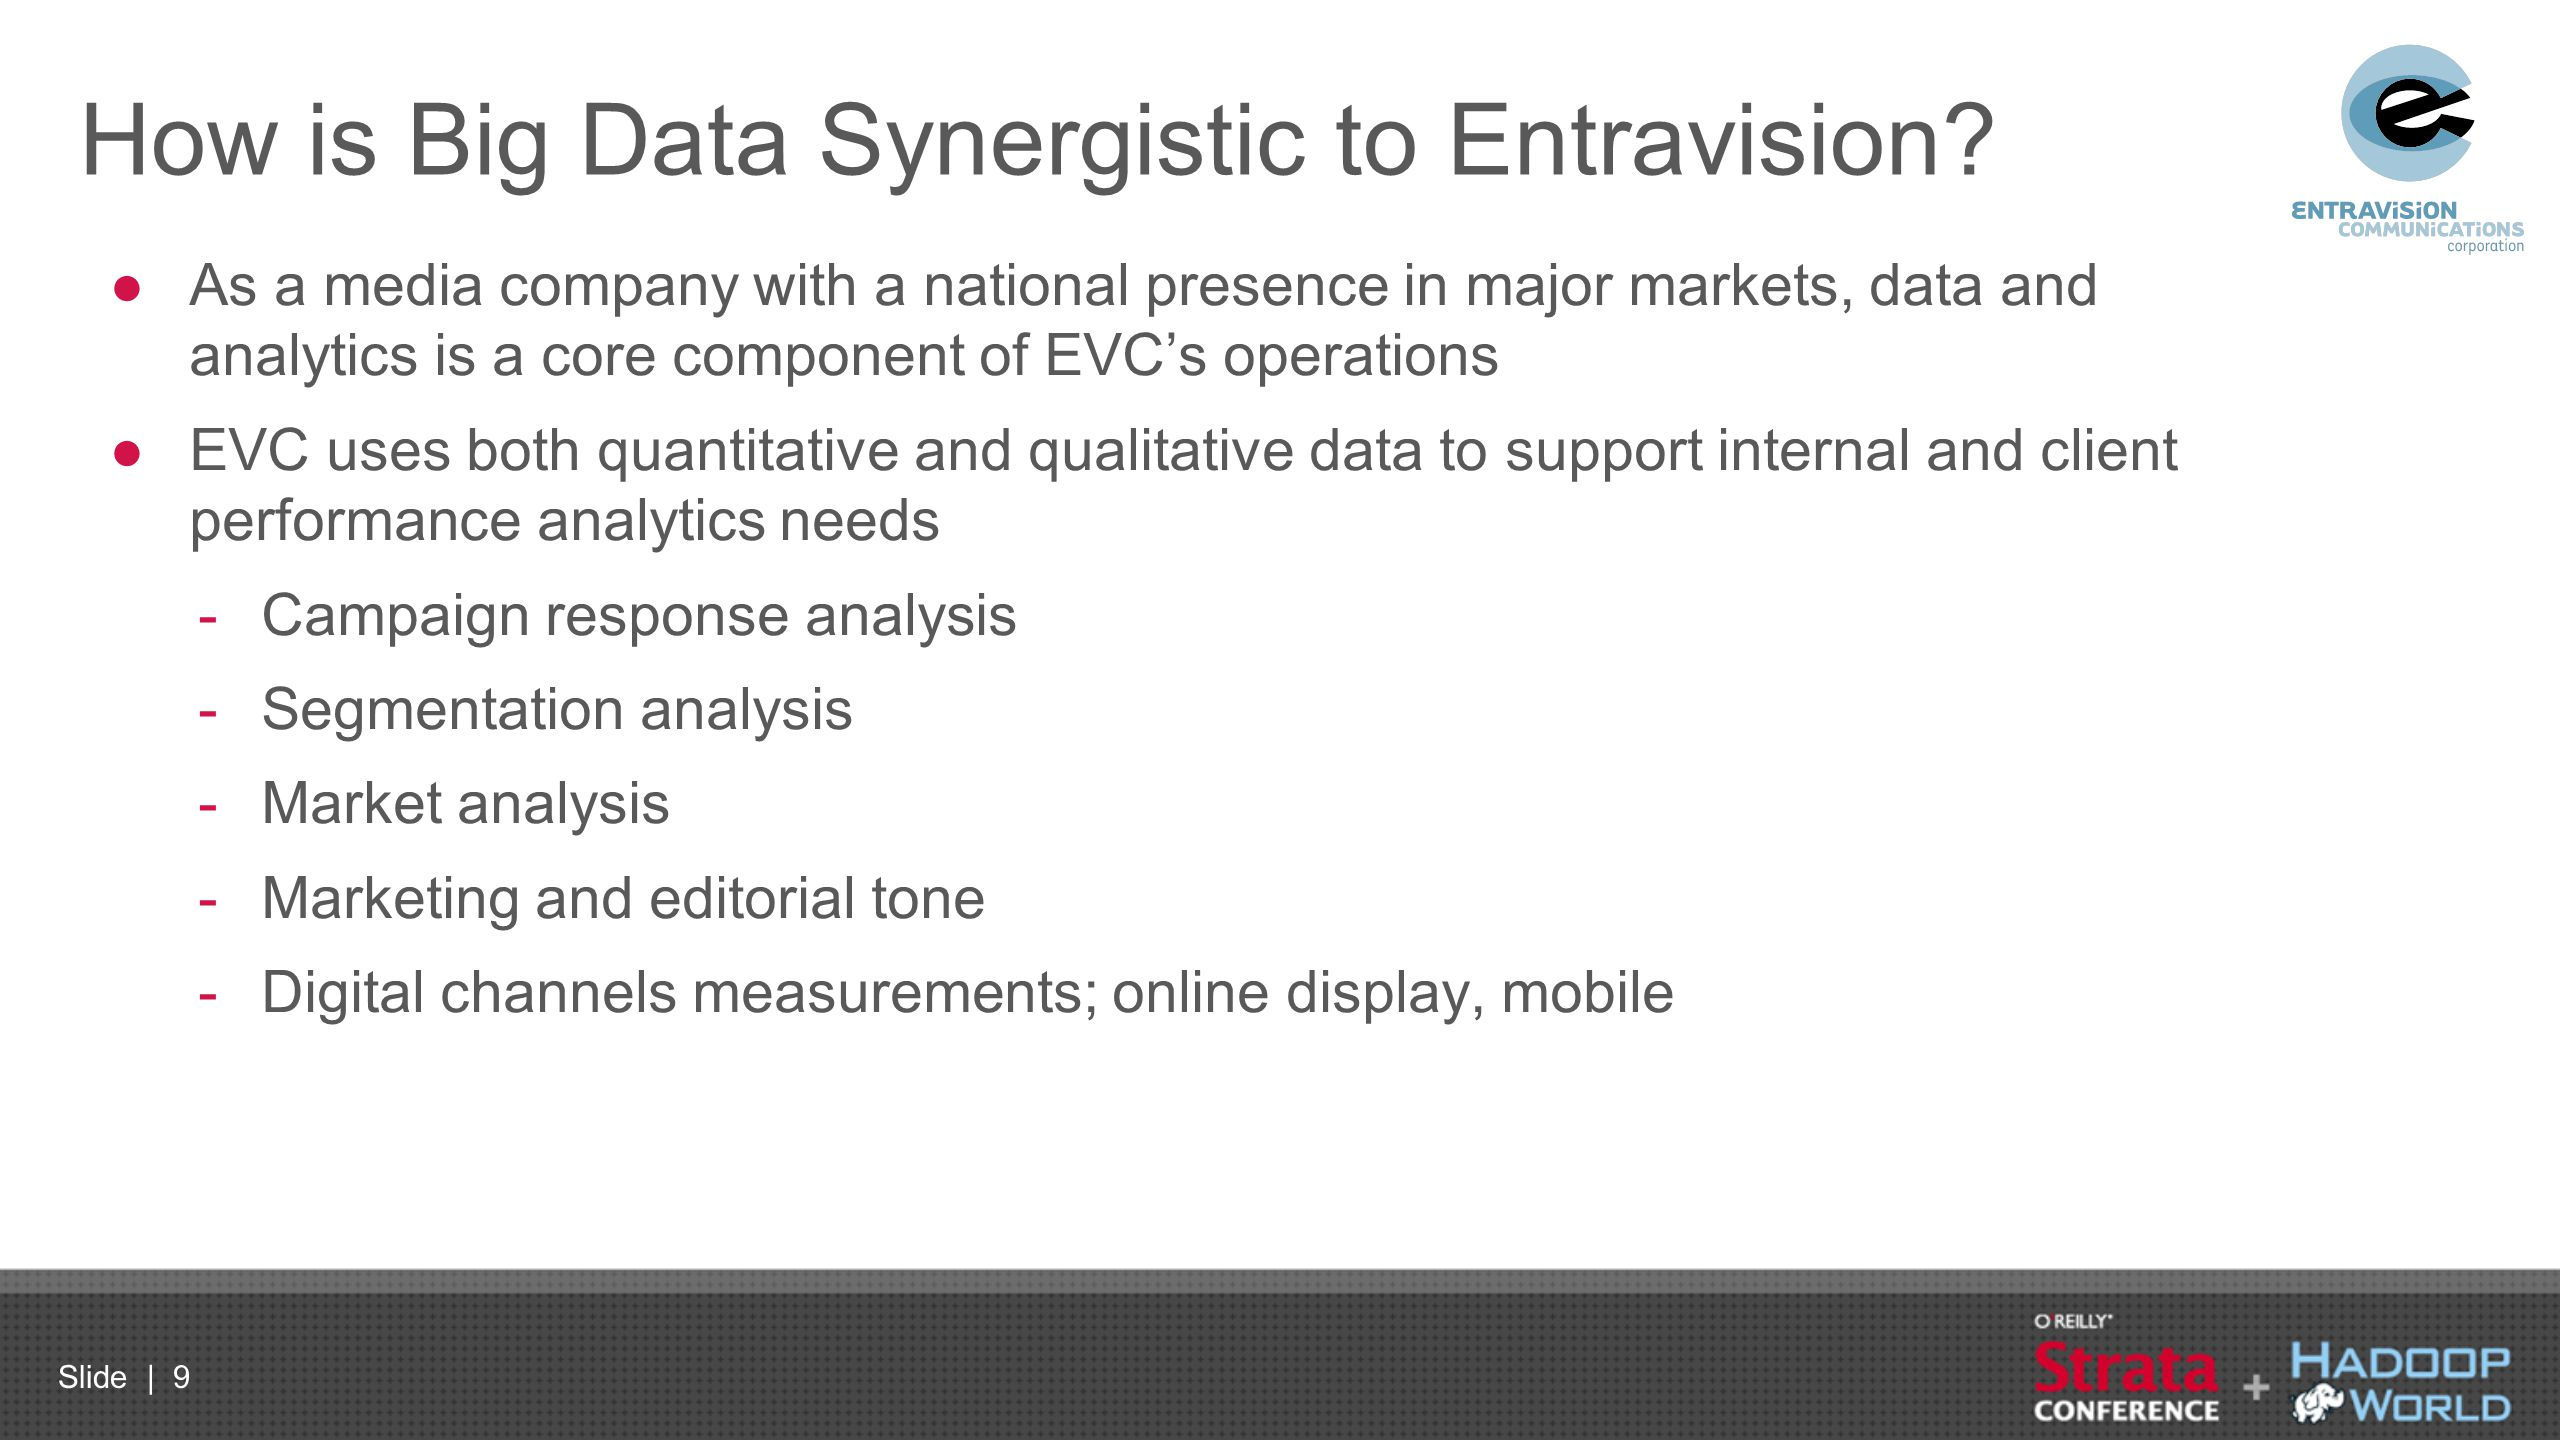 Slide | 10 Big Data Brings to Entravision High-Value Offering ●Ability to more precisely support customers across the entire marketing value chain: -Move from a media & communications discussion to a business challenge discussion -Help identify growth opportunity within the Hispanic market -Improve measurement of Hispanic market investments -Demonstrate ROI -Help accelerate growth through empirical data insights ●Transformative in the way we approached business and marketing needs ●Leverage big data environment and 3 rd party data sources across business units